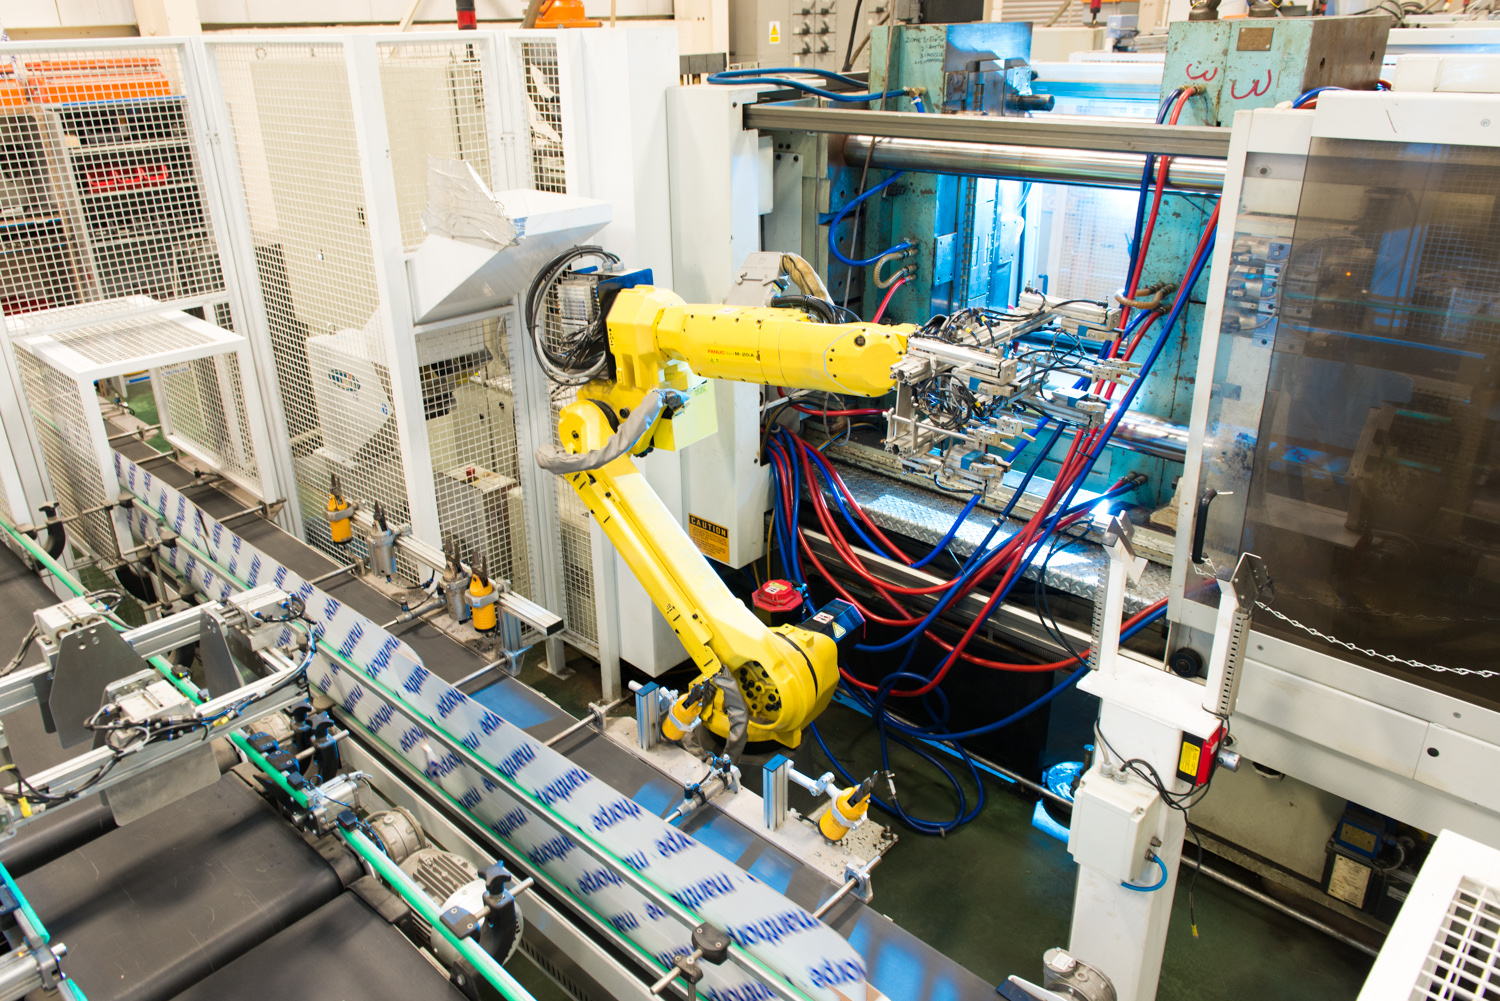 These robotic arms move incredibly fast! This one plucks a plastic part, rotates and attaches other parts, and places it in a chute for packaging.